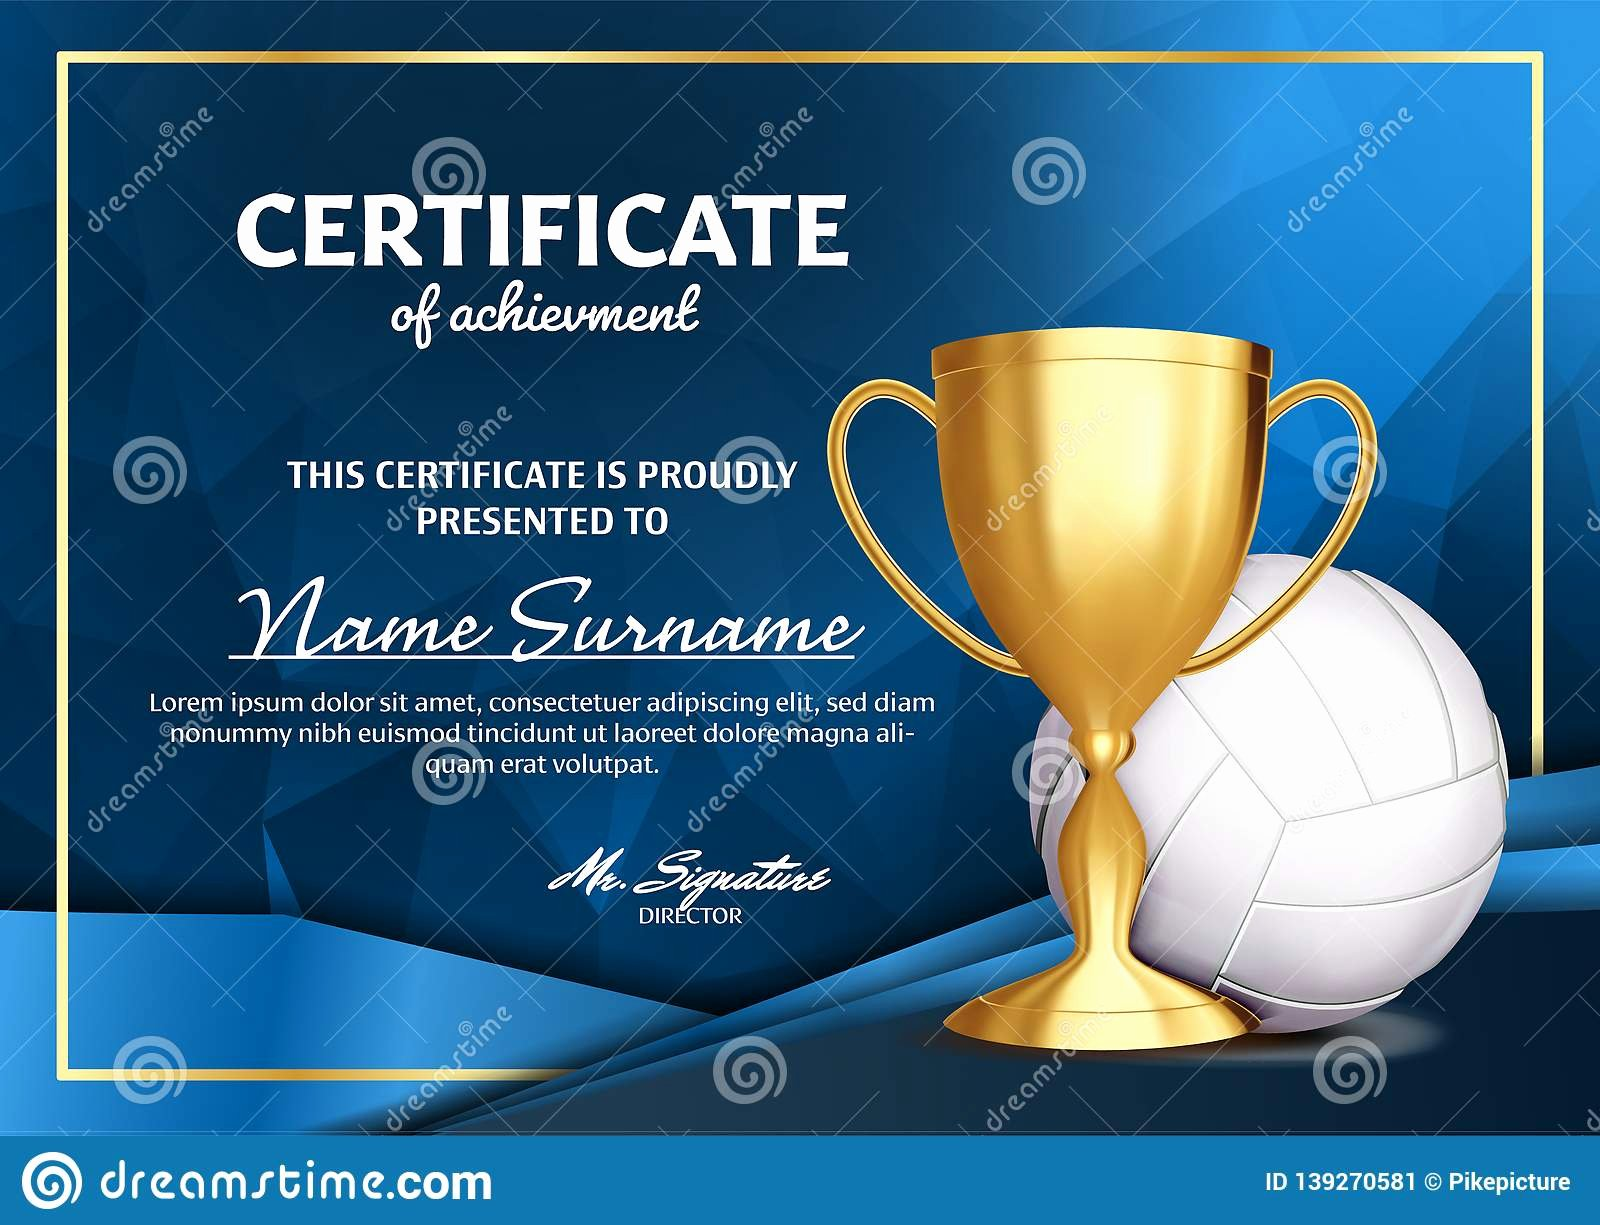 Volleyball Certificate Template Free New Volleyball Certificate Diploma with Golden Cup Vector